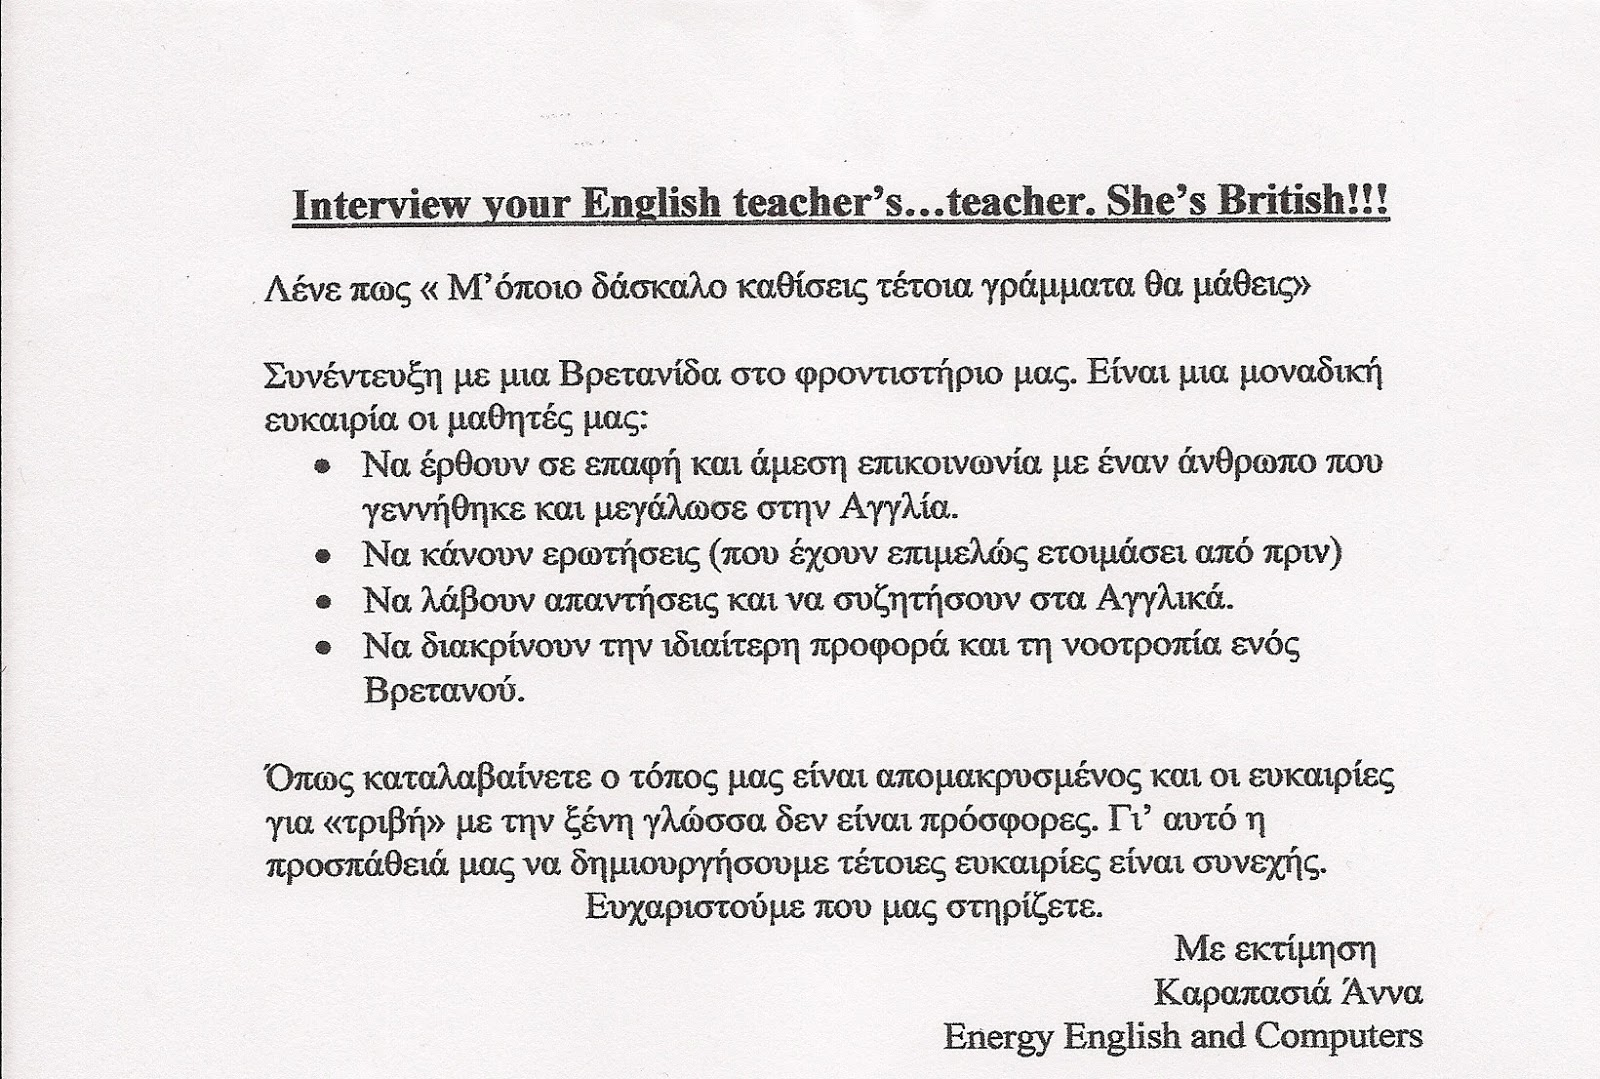 english teacher interview essay English 352, technical writing step 1 - in class, split into groups of two and interview each other, making sure to take notes about specific things to use in the essay step 2 - write a 1 1/2 or 2 page double-spaced essay with an introduction, body and conclusion, about the person you interviewed.